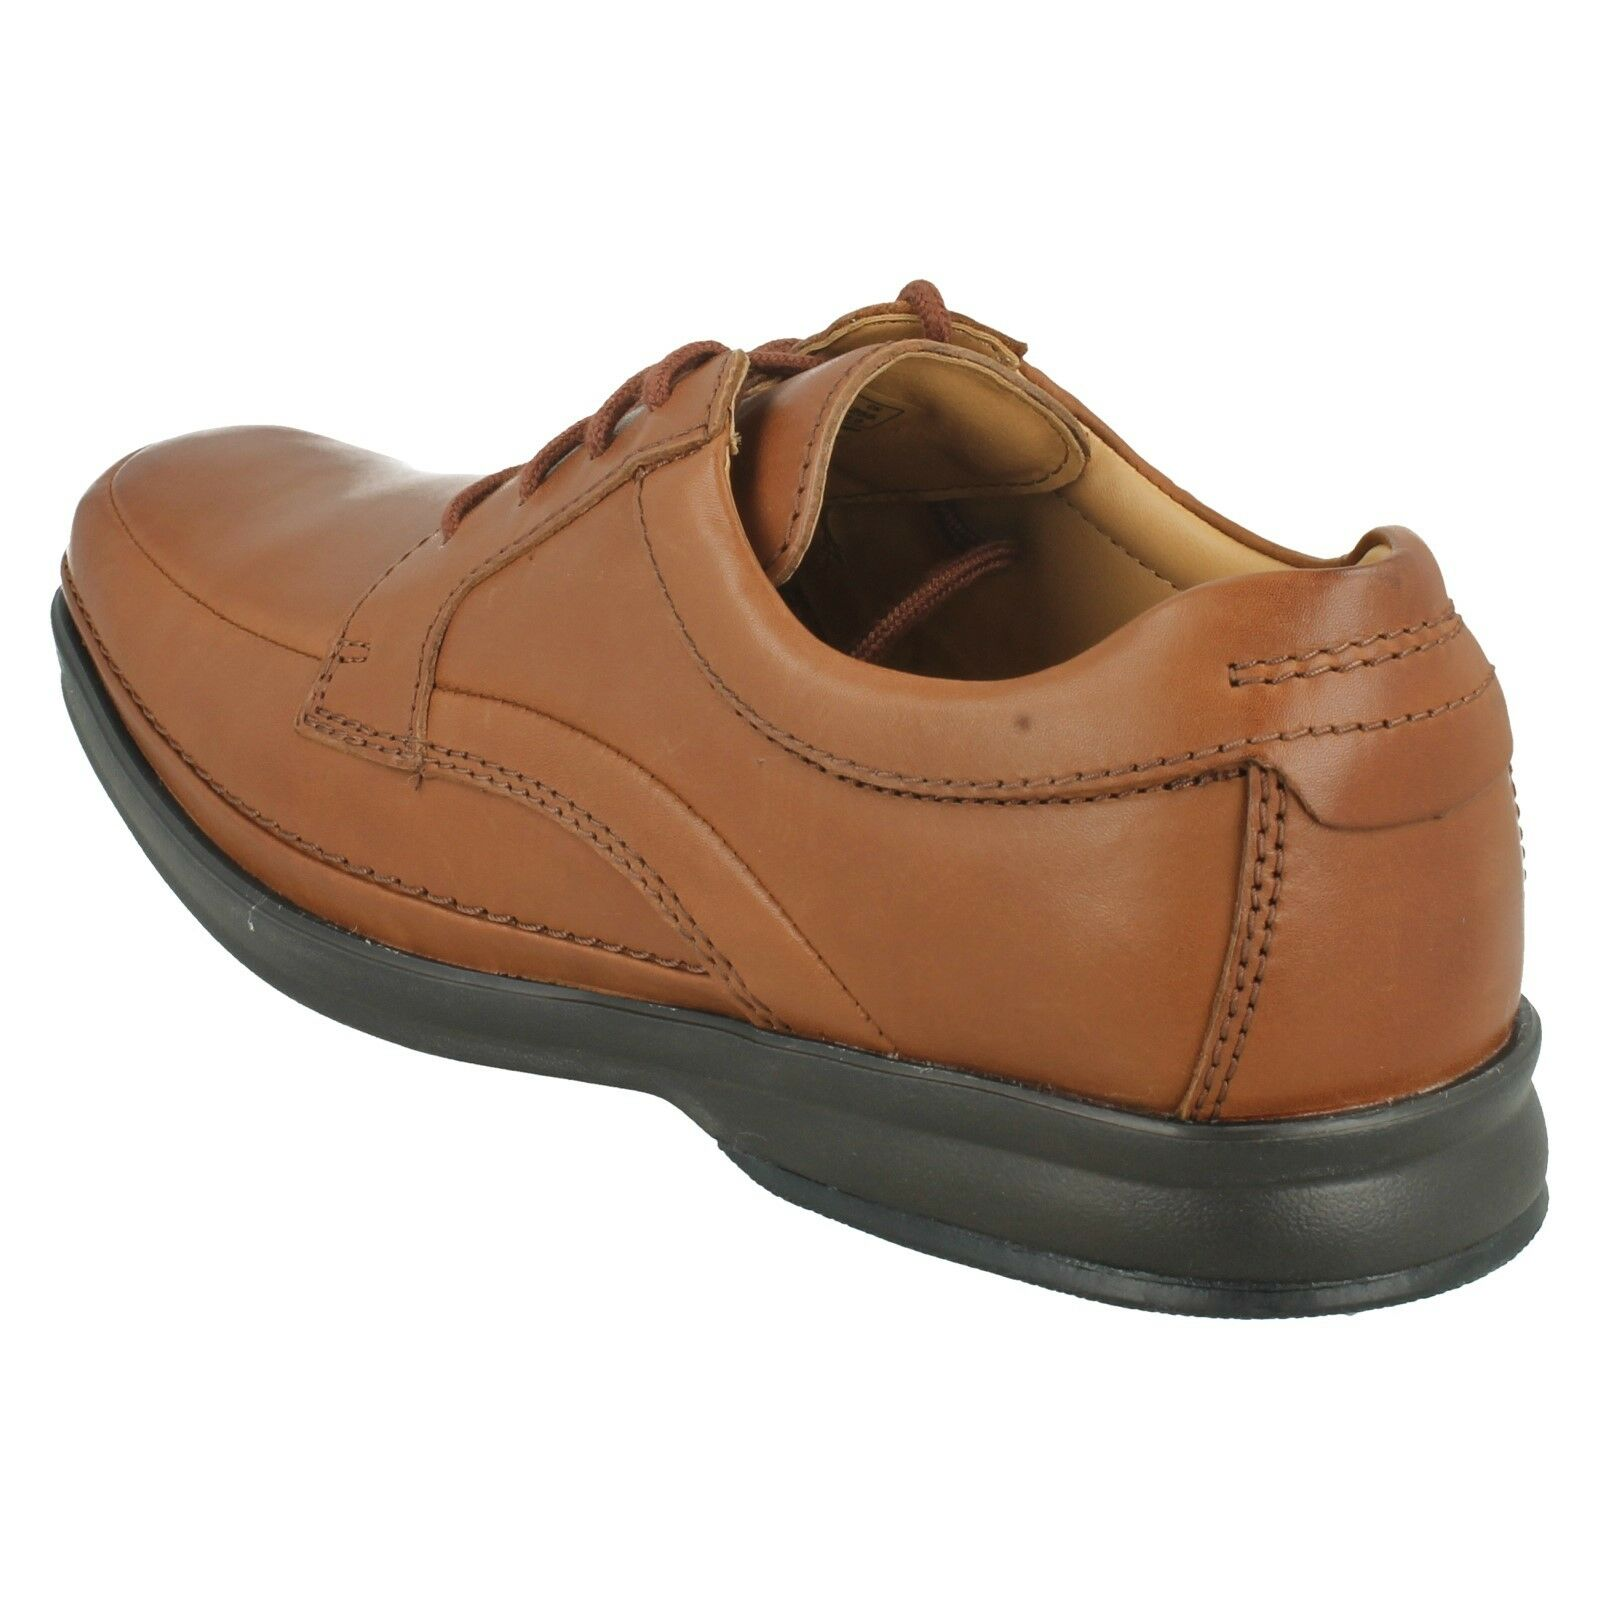 SCOPIC WAY CLARKS  Herren LACE UP SMART LEATHER CLASSIC CUSHIONED WIDE SMART UP FORMAL Schuhe a5d09a